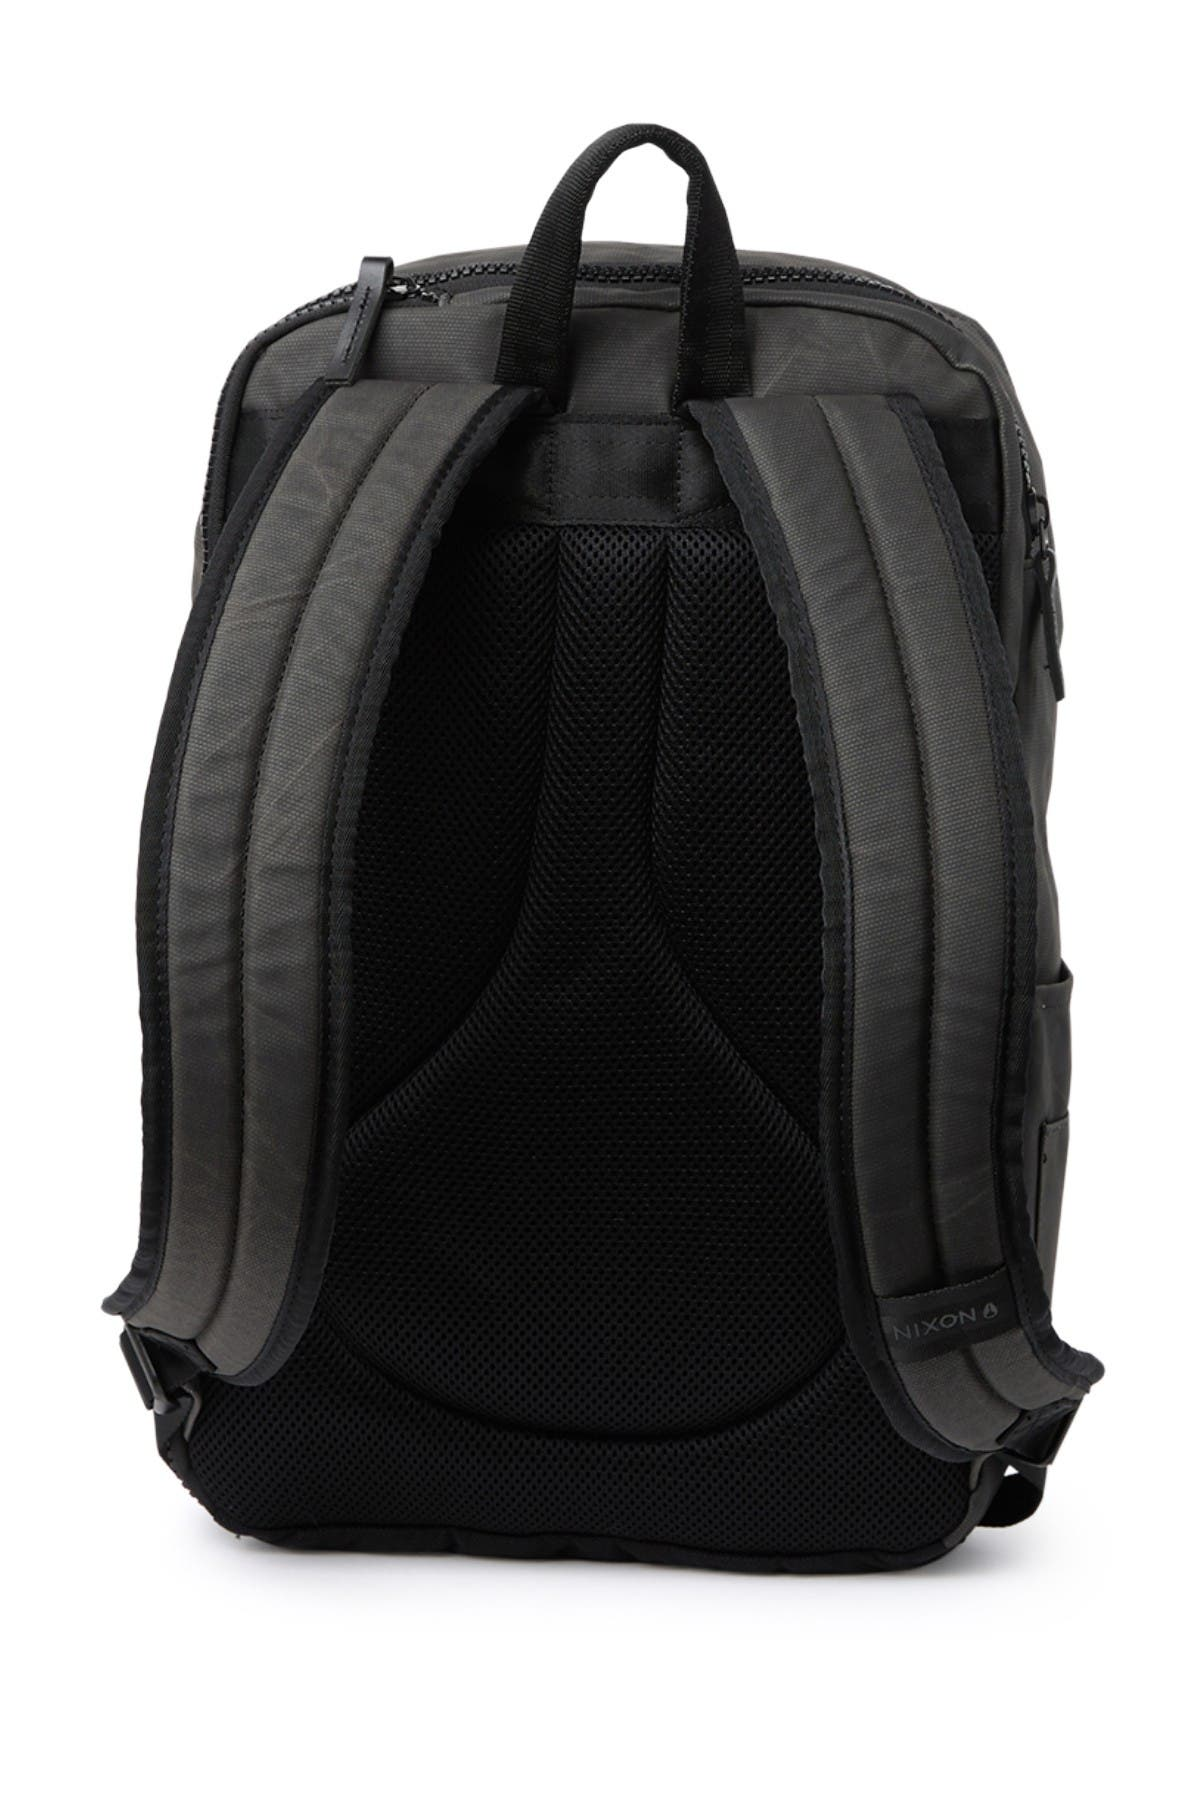 Image of Nixon Daily Backpack